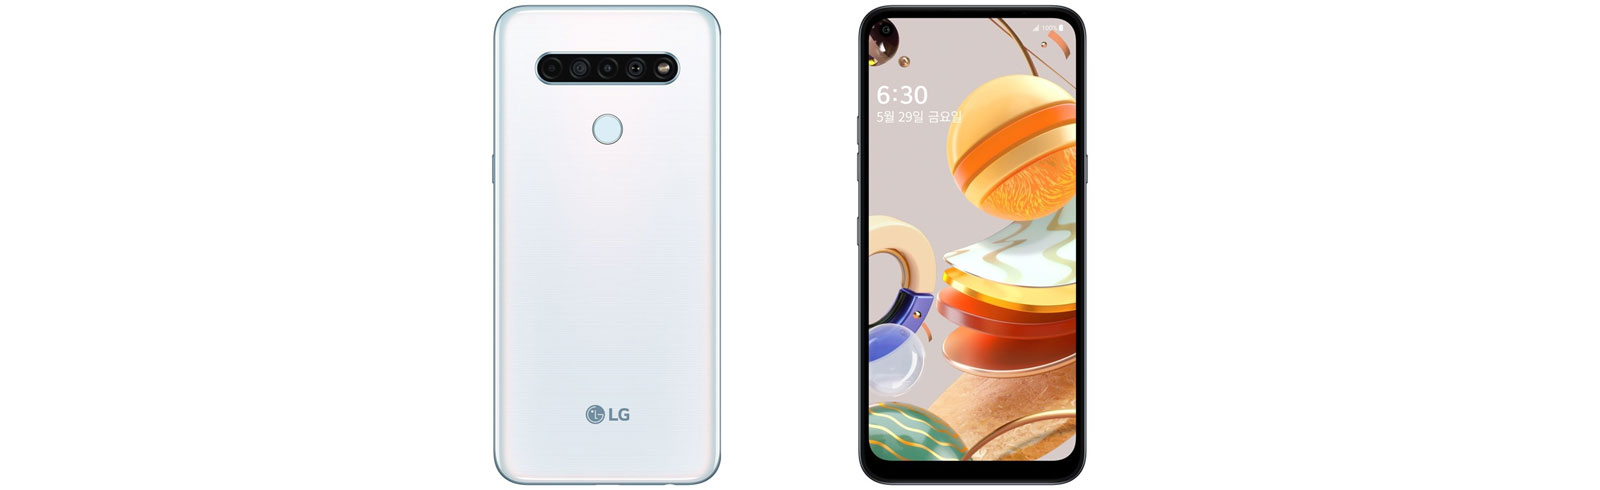 LG Q61 goes official - specifications and price